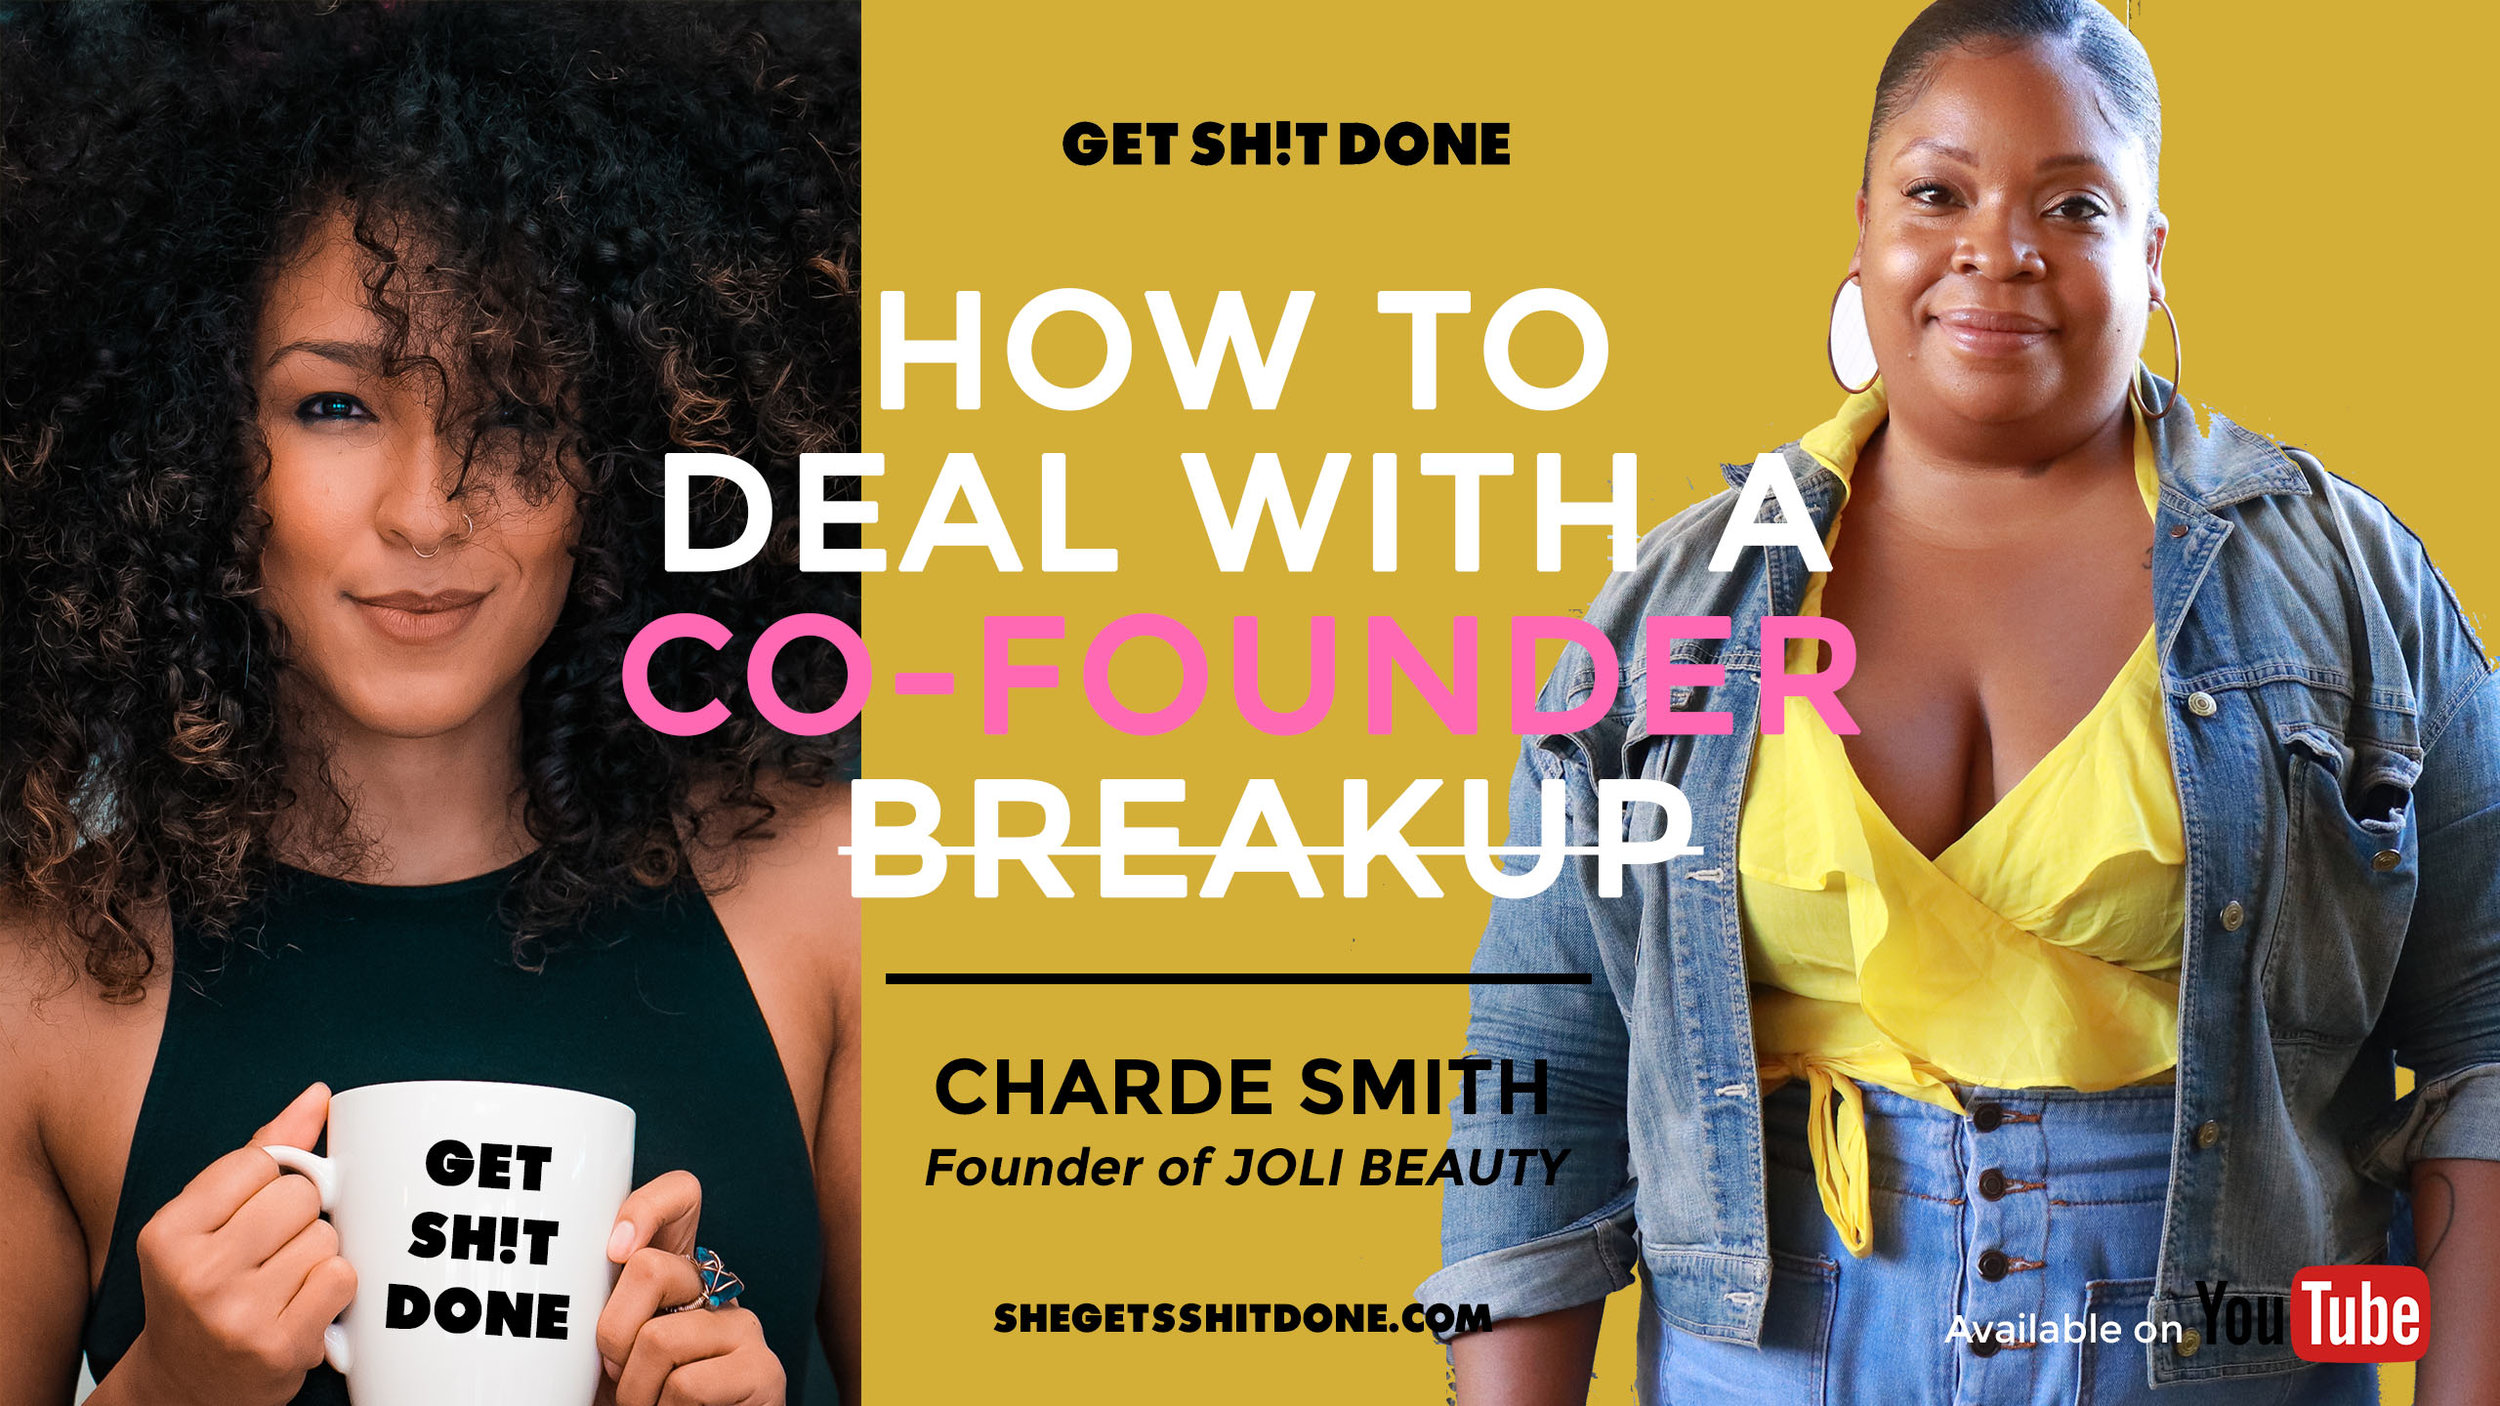 Business just being business is bullshit. Building a company is personal. This is why co-founder breakups can be just as gut-wrenching as romantic breakups. You see your co-founders more than you see significant others, family, and friends. If you're a founder that has gone through a breakup, a founder going through a breakup, or you're considering a co-founder, tune in. I sat down with the incredibly brave founder of Joli Beauty, Charde Smith, who was vulnerable enough to welcome me into her space and share her truth around how she dealt with her co-founder breakup.   WATCH NOW  ( Will be available in podcast format soon!)